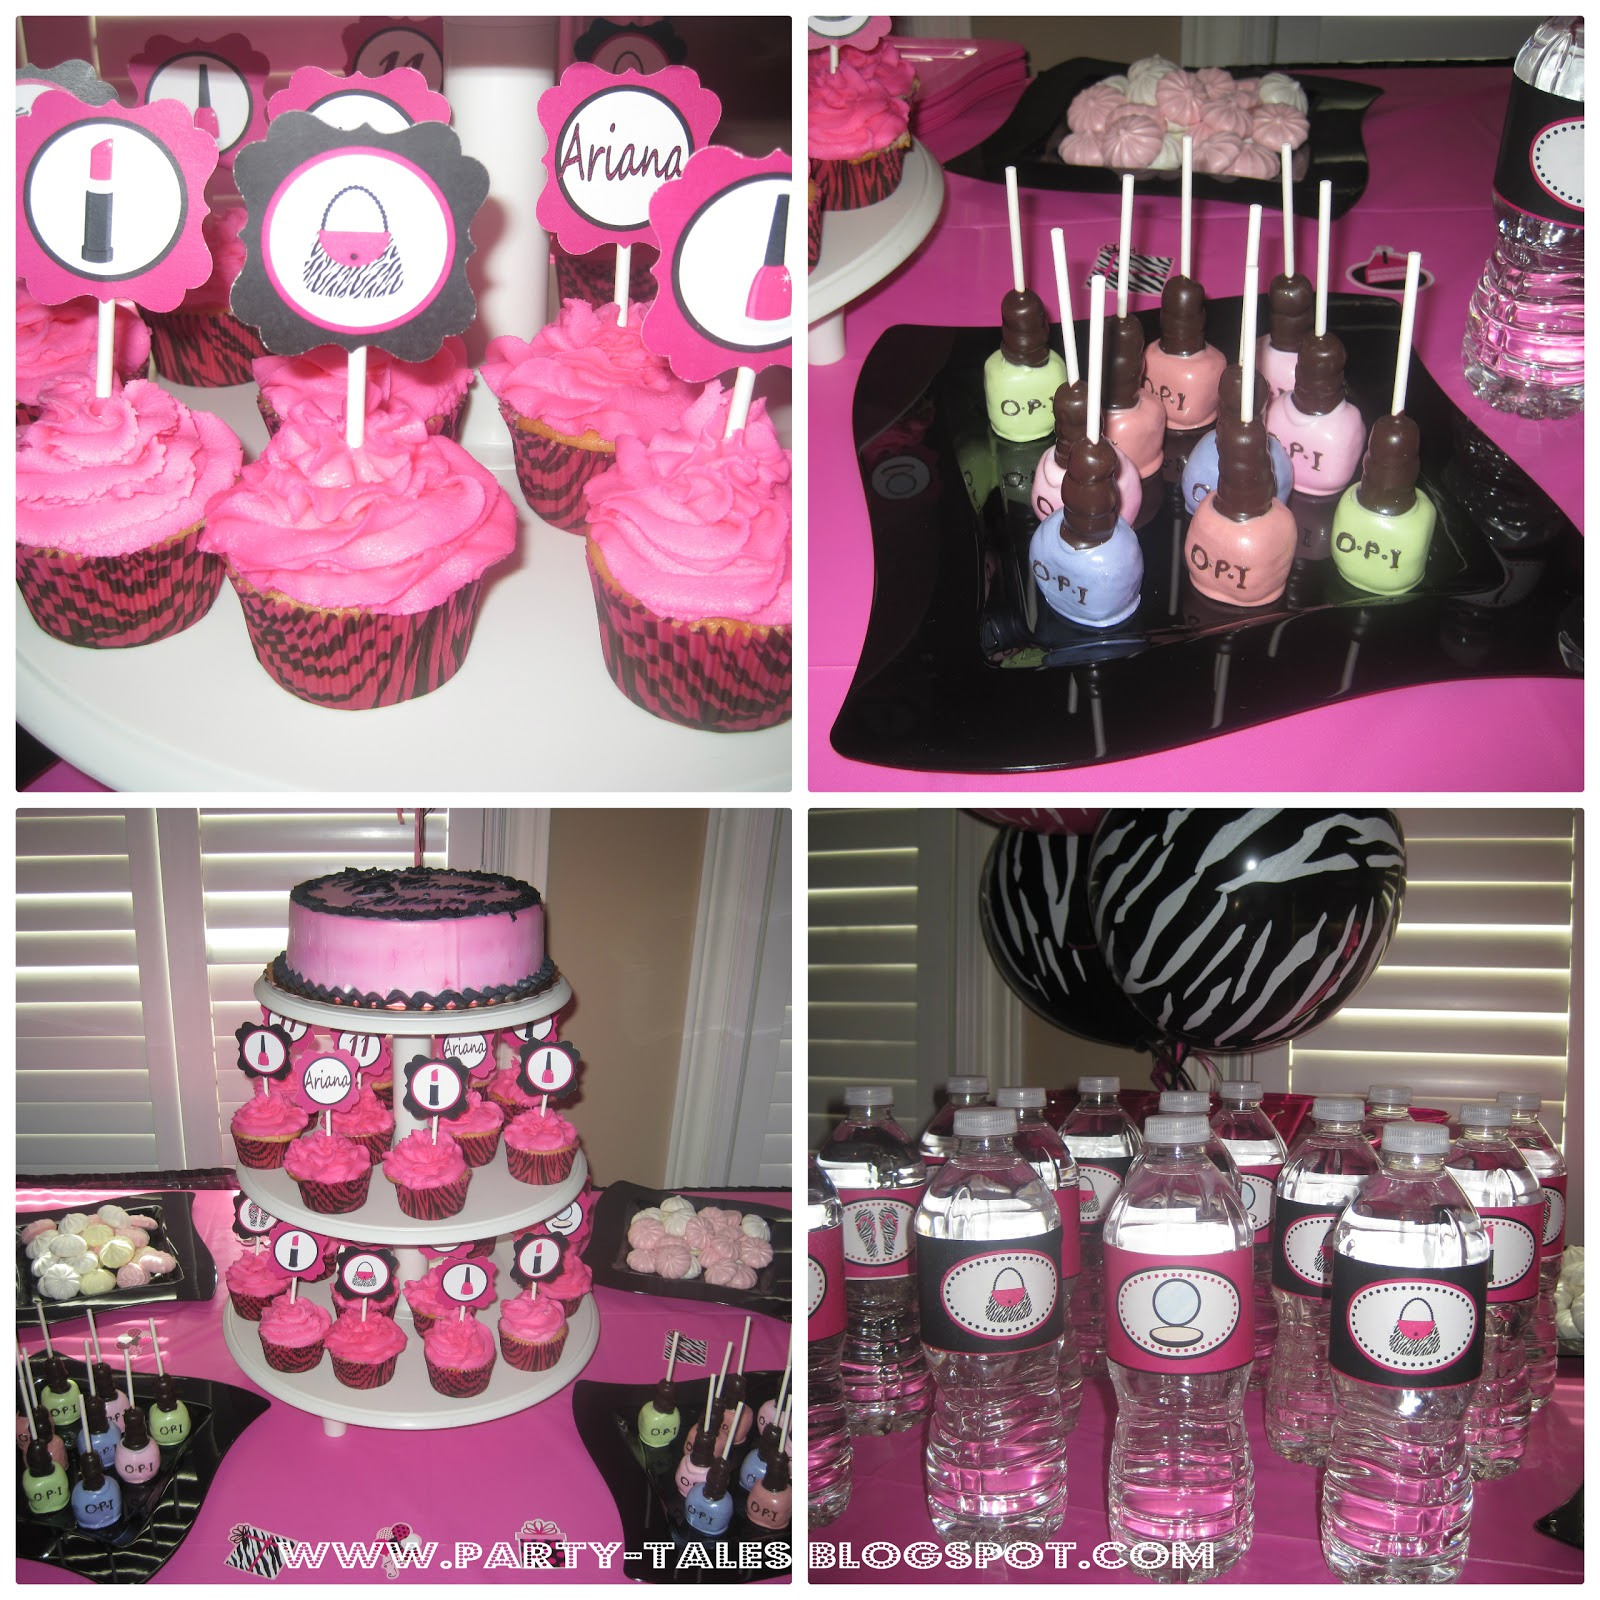 PartyTales Birthday Party Zebra Print and Hot Pink DIVA SPA